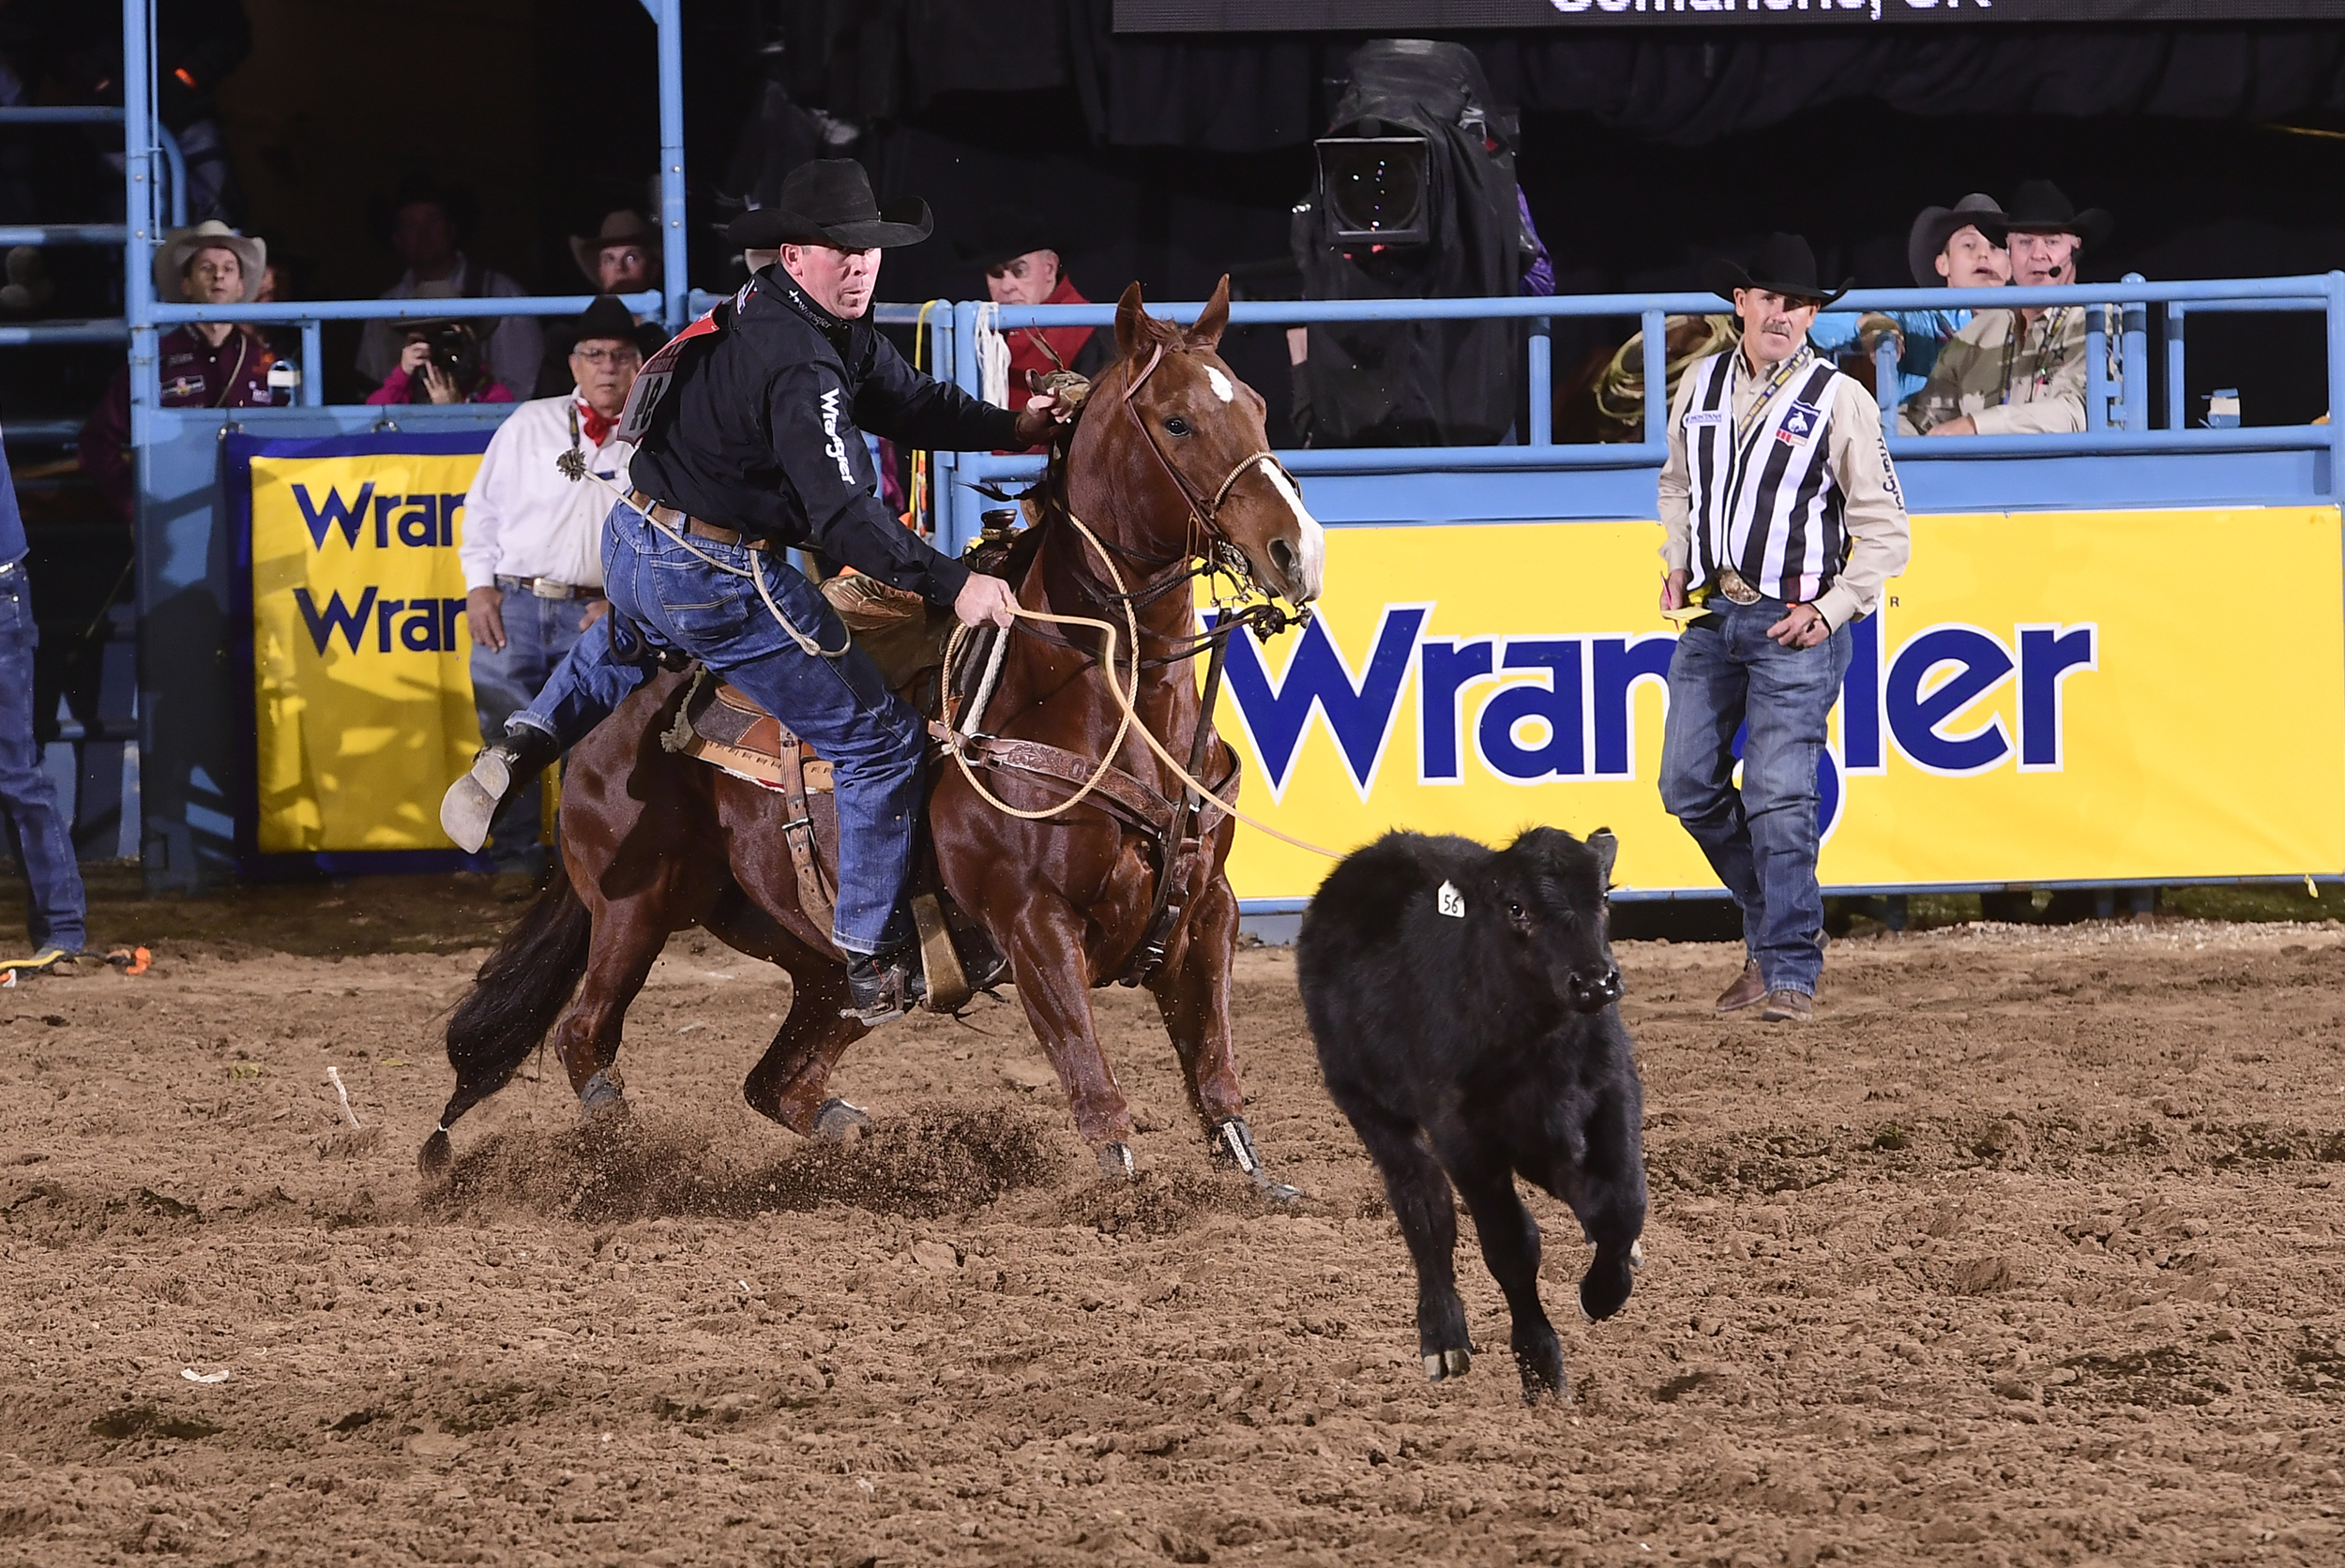 Tie-down roper Ryan Jarrett ropes his calf en route to a 7.8-second run Wednesday to finish fourth in the seventh round of the National Finals Rodeo. (PRCA PRORODEO PHOTO BY JAMES PHIFER)